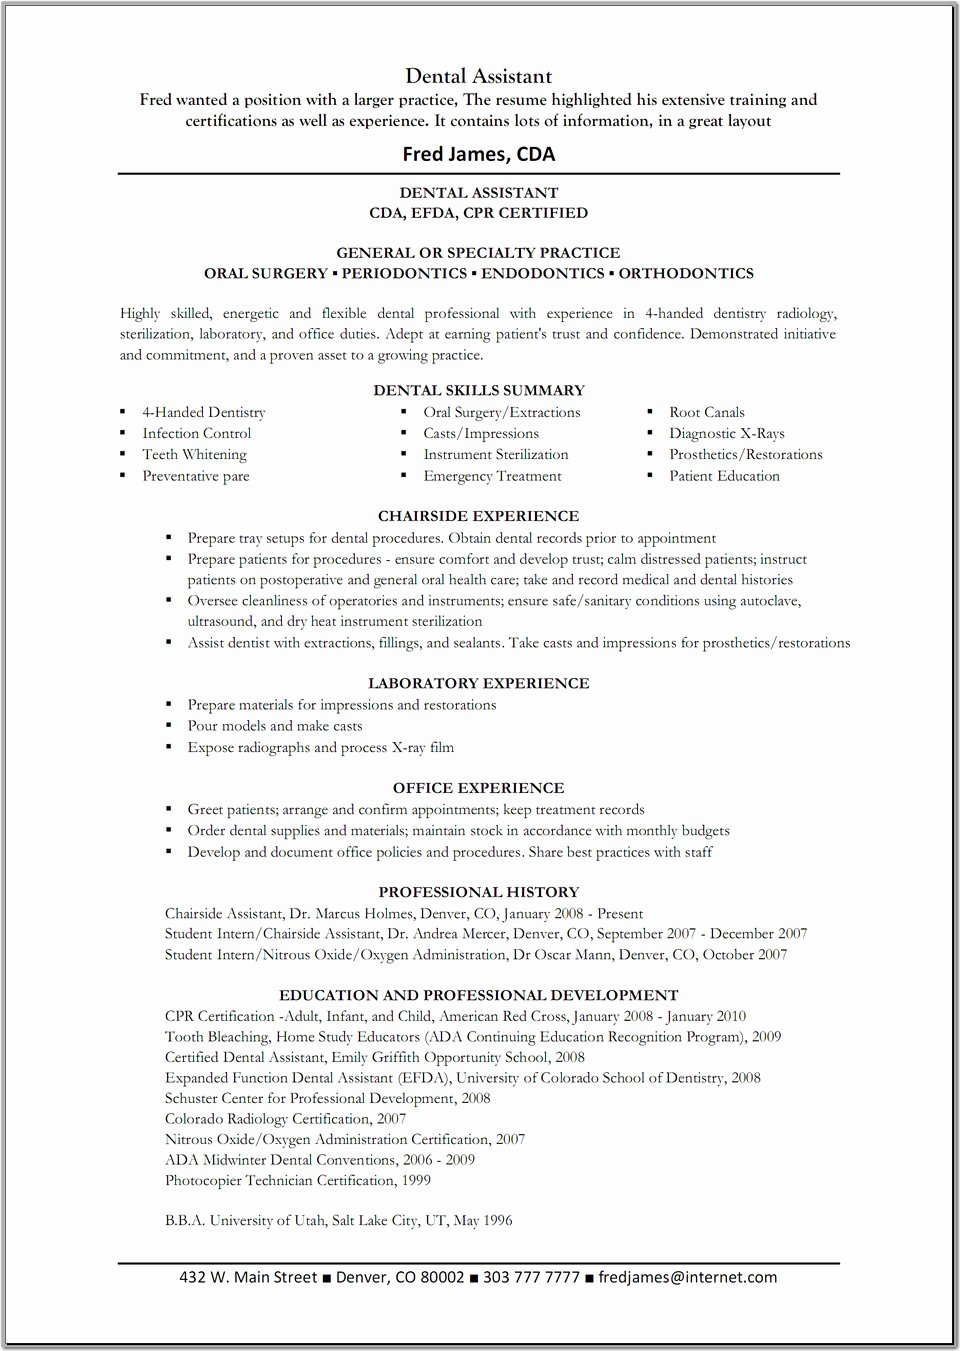 Best Resume Template Example for Dental assistant with